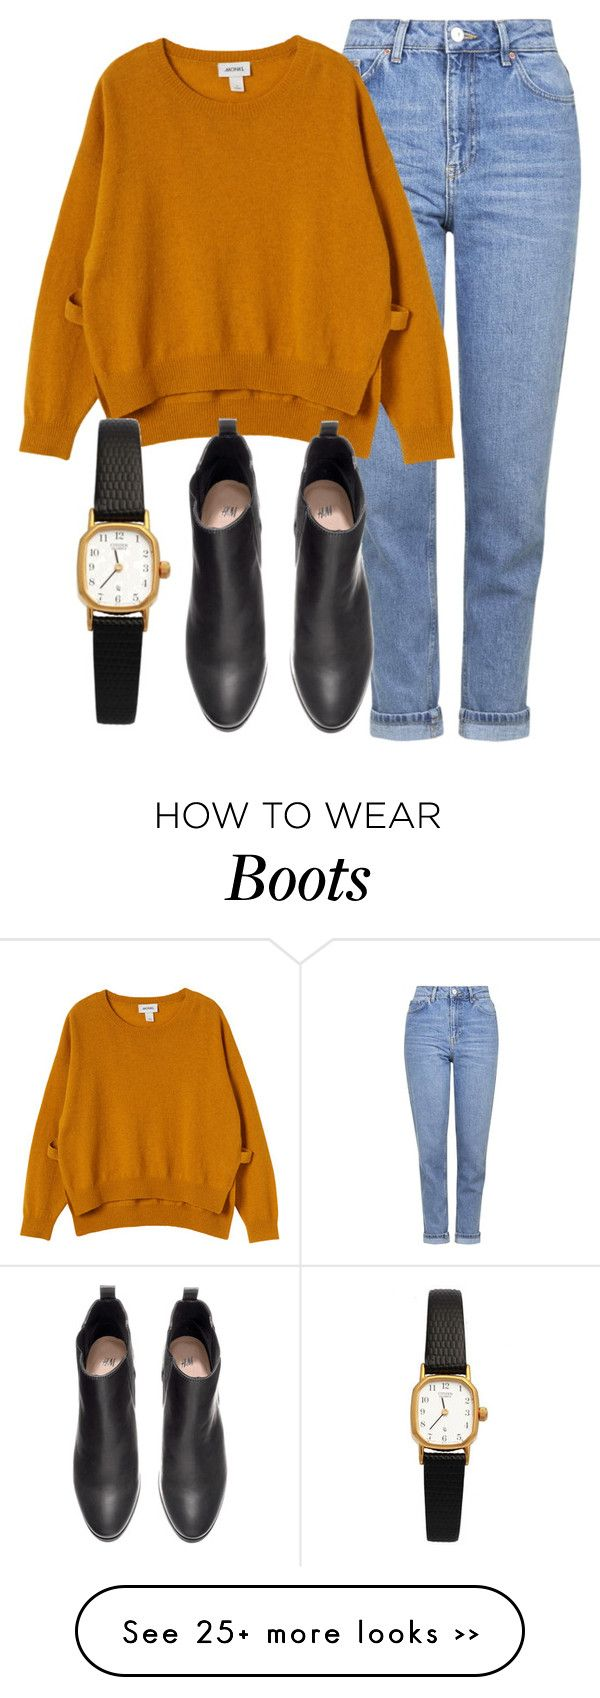 """""""Untitled #4289"""" by laurenmboot on Polyvore featuring Topshop, Monki, H&M and American Apparel"""